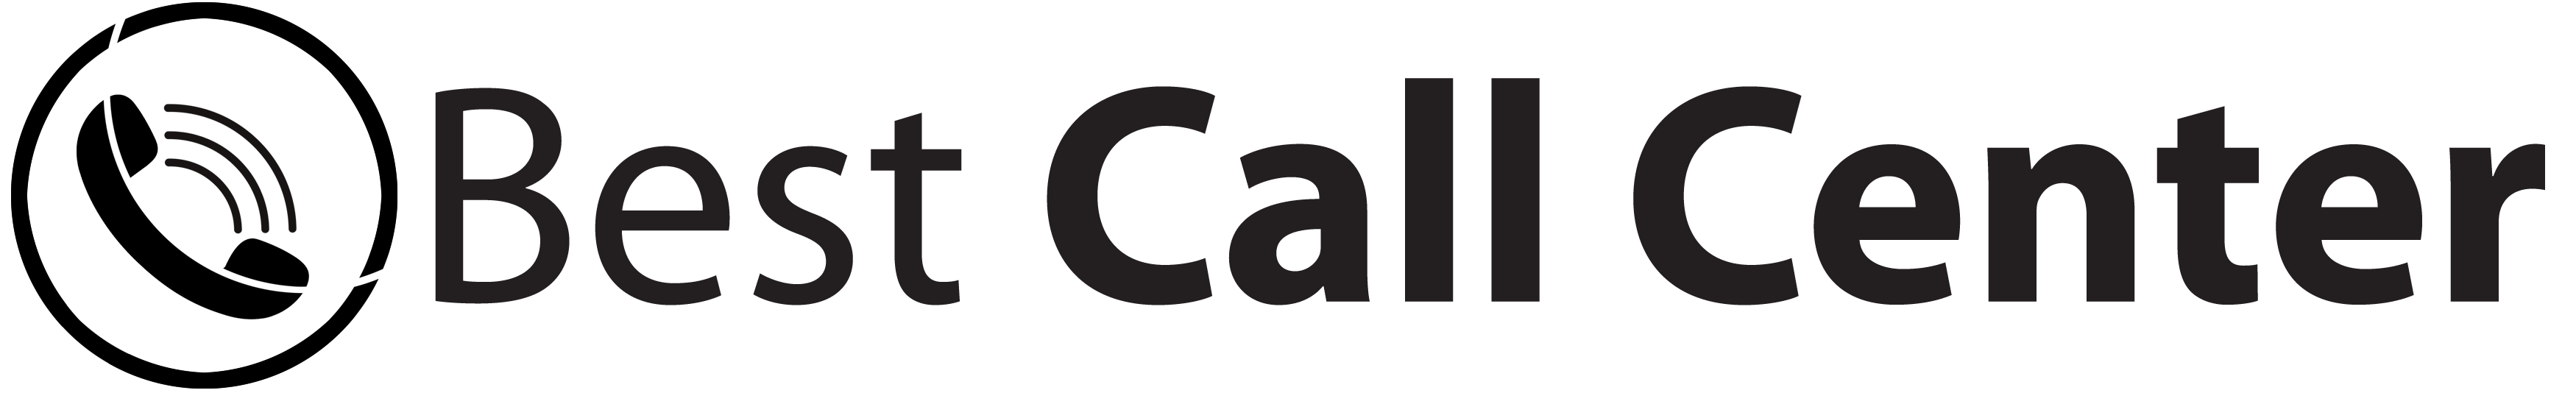 The Best Call Center logo